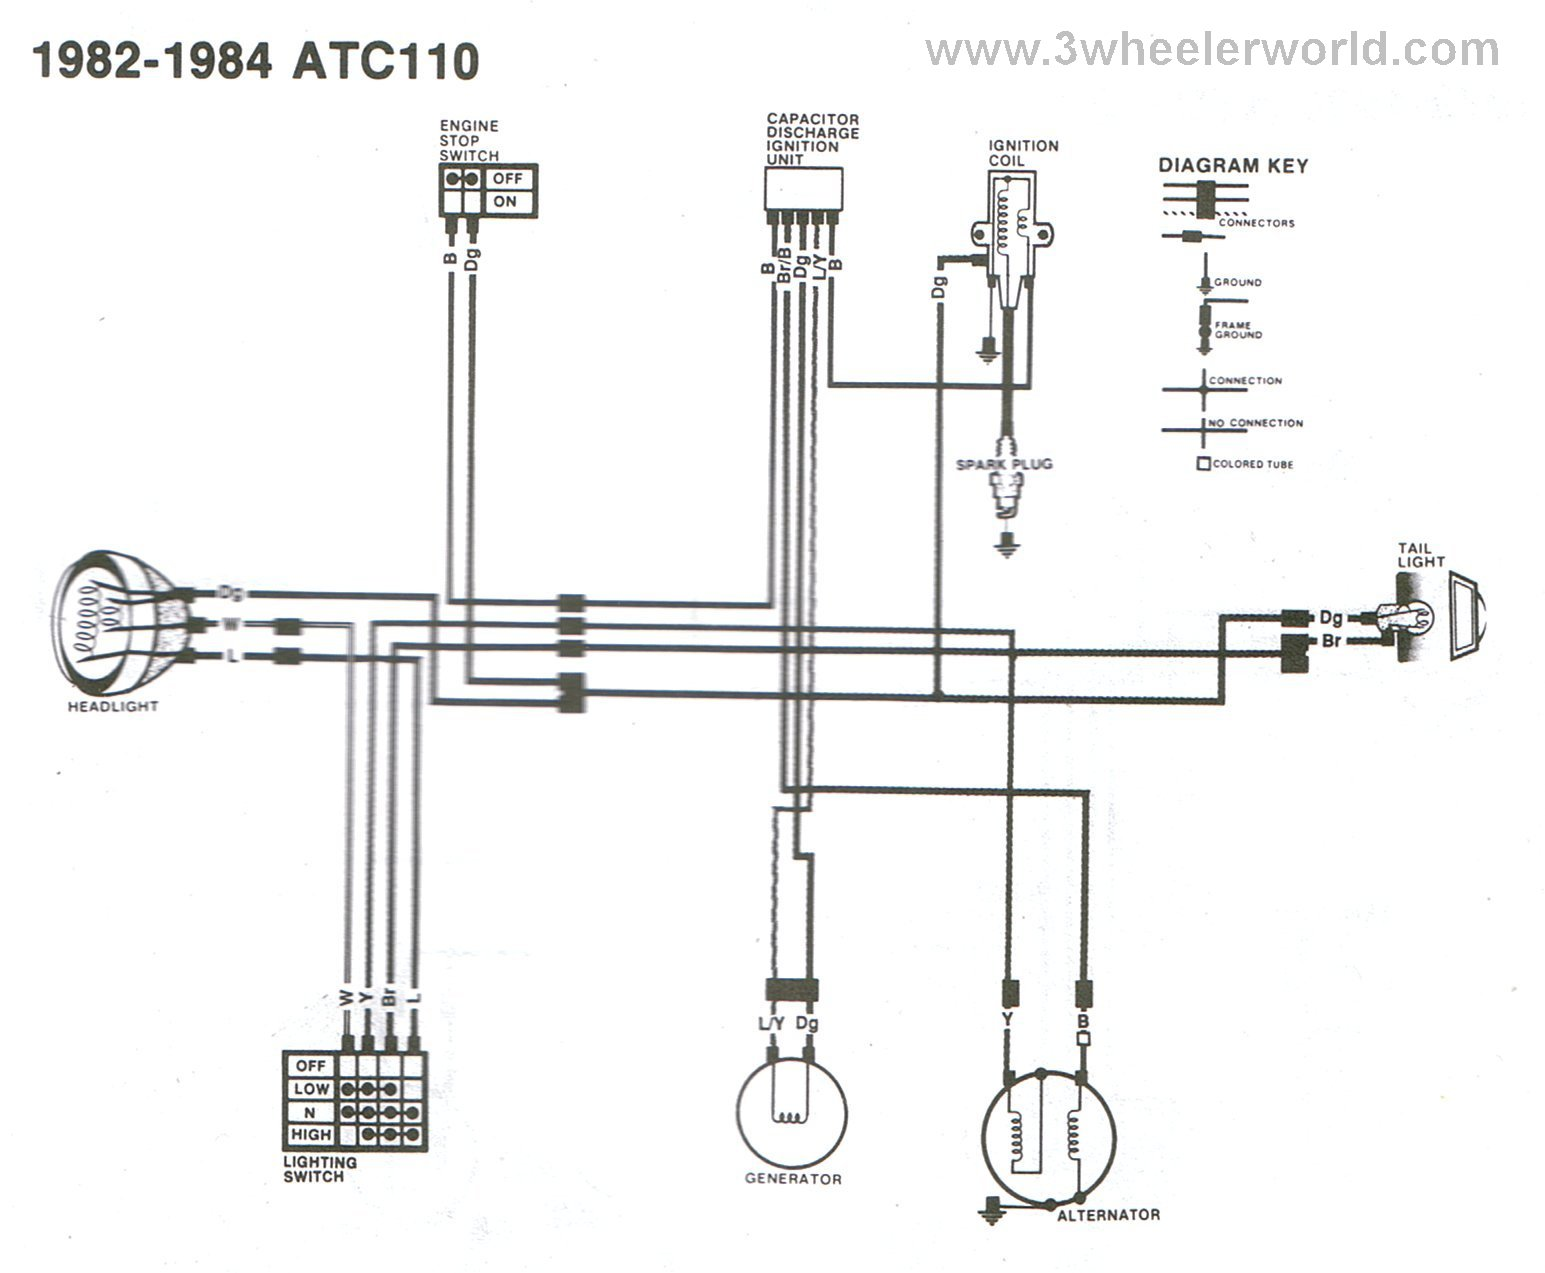 3 Wheeler World Tech Help Honda Wiring Diagrams 125s Diagram Atc110 1982 Thru 1984